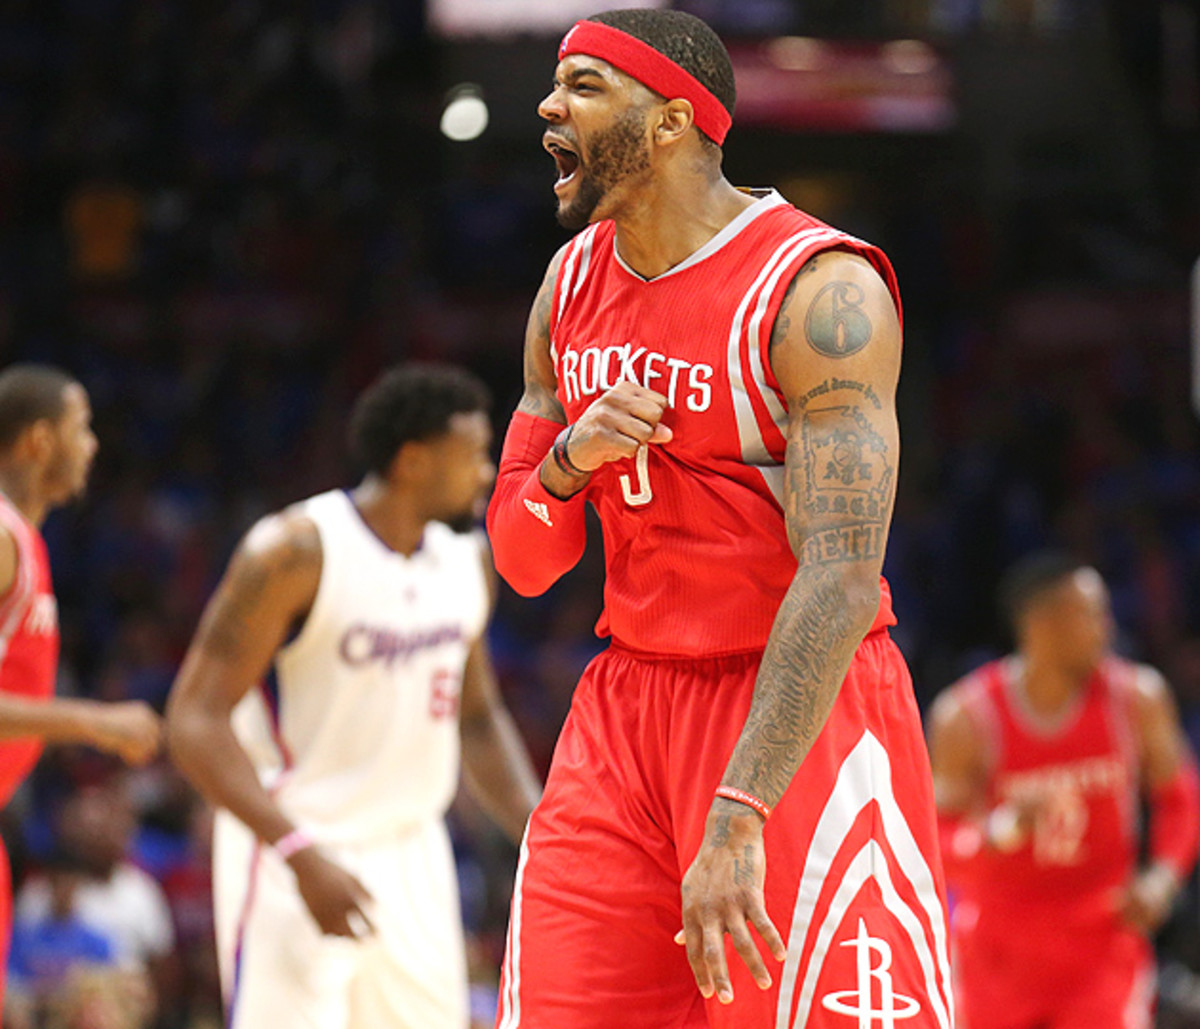 josh-smith-houston-rockets-los-angeles-clippers-2015-nba-playoffs.jpg